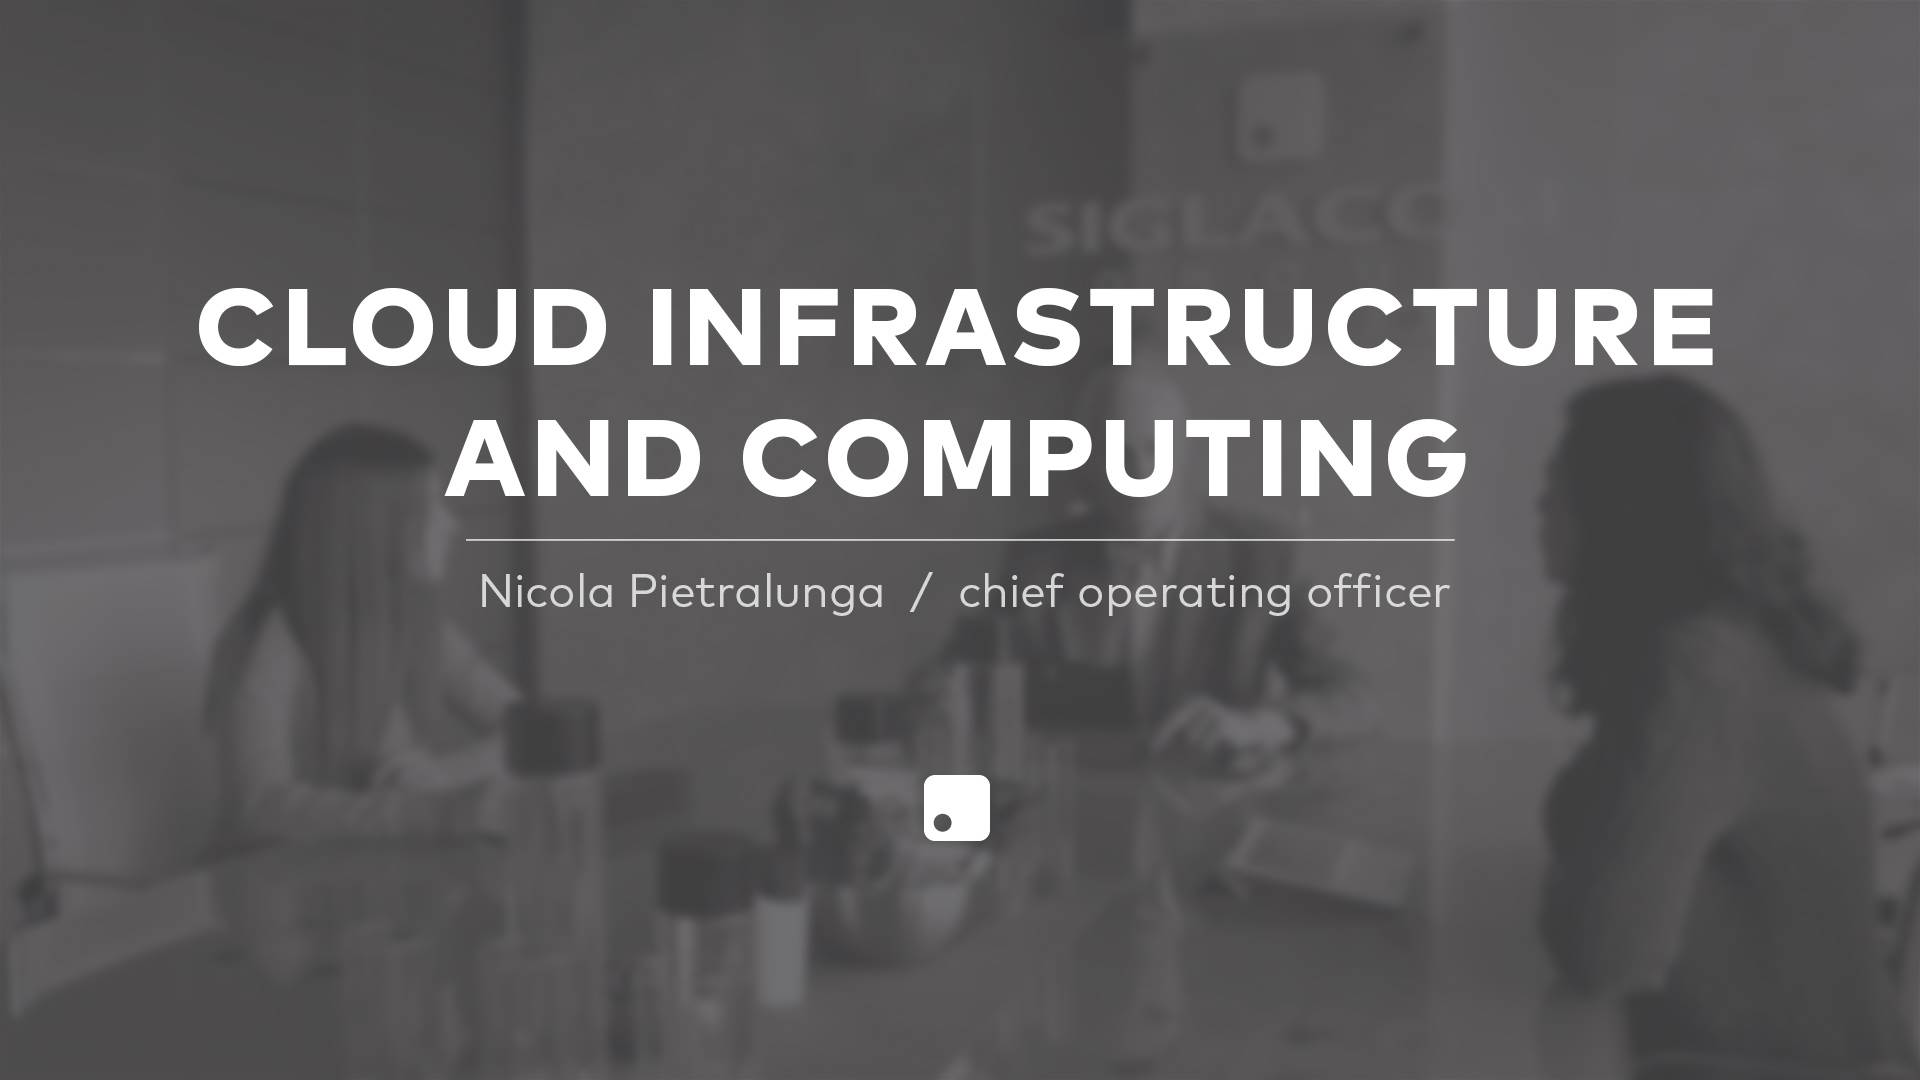 Cloud infrastructure and computing